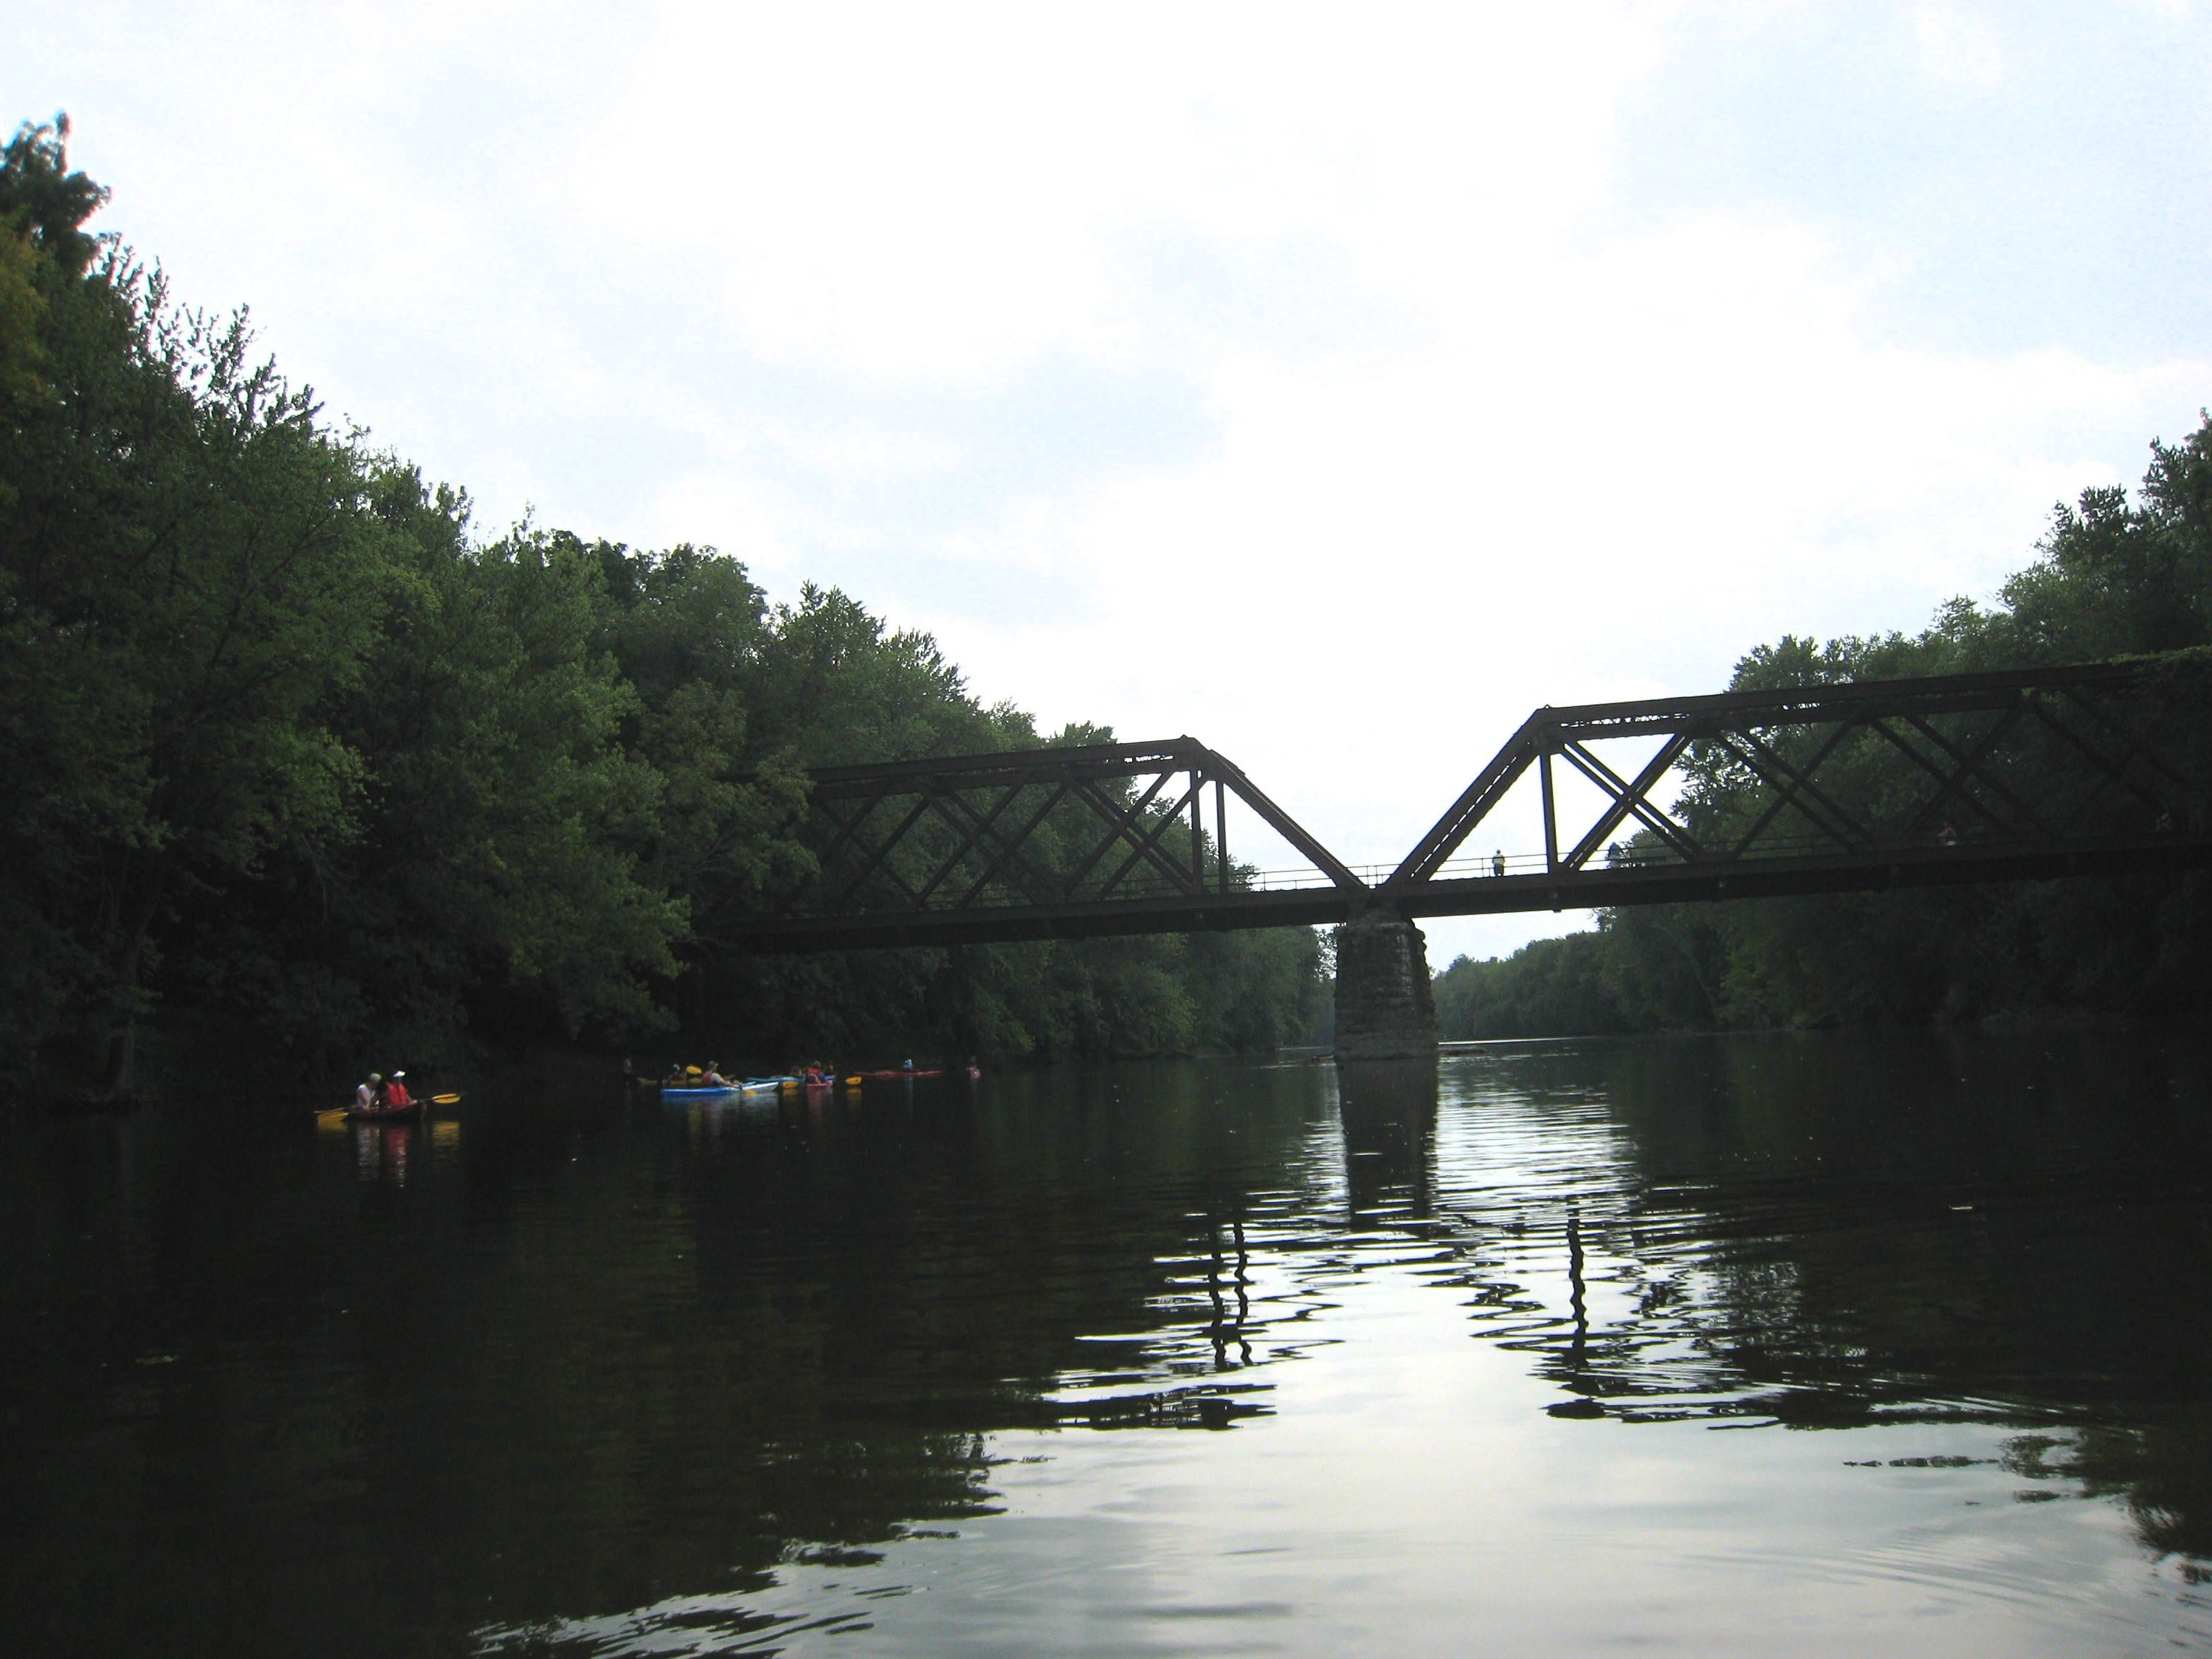 Photos - Hudson River and Beyond Kayaking Club (Dobbs Ferry, NY